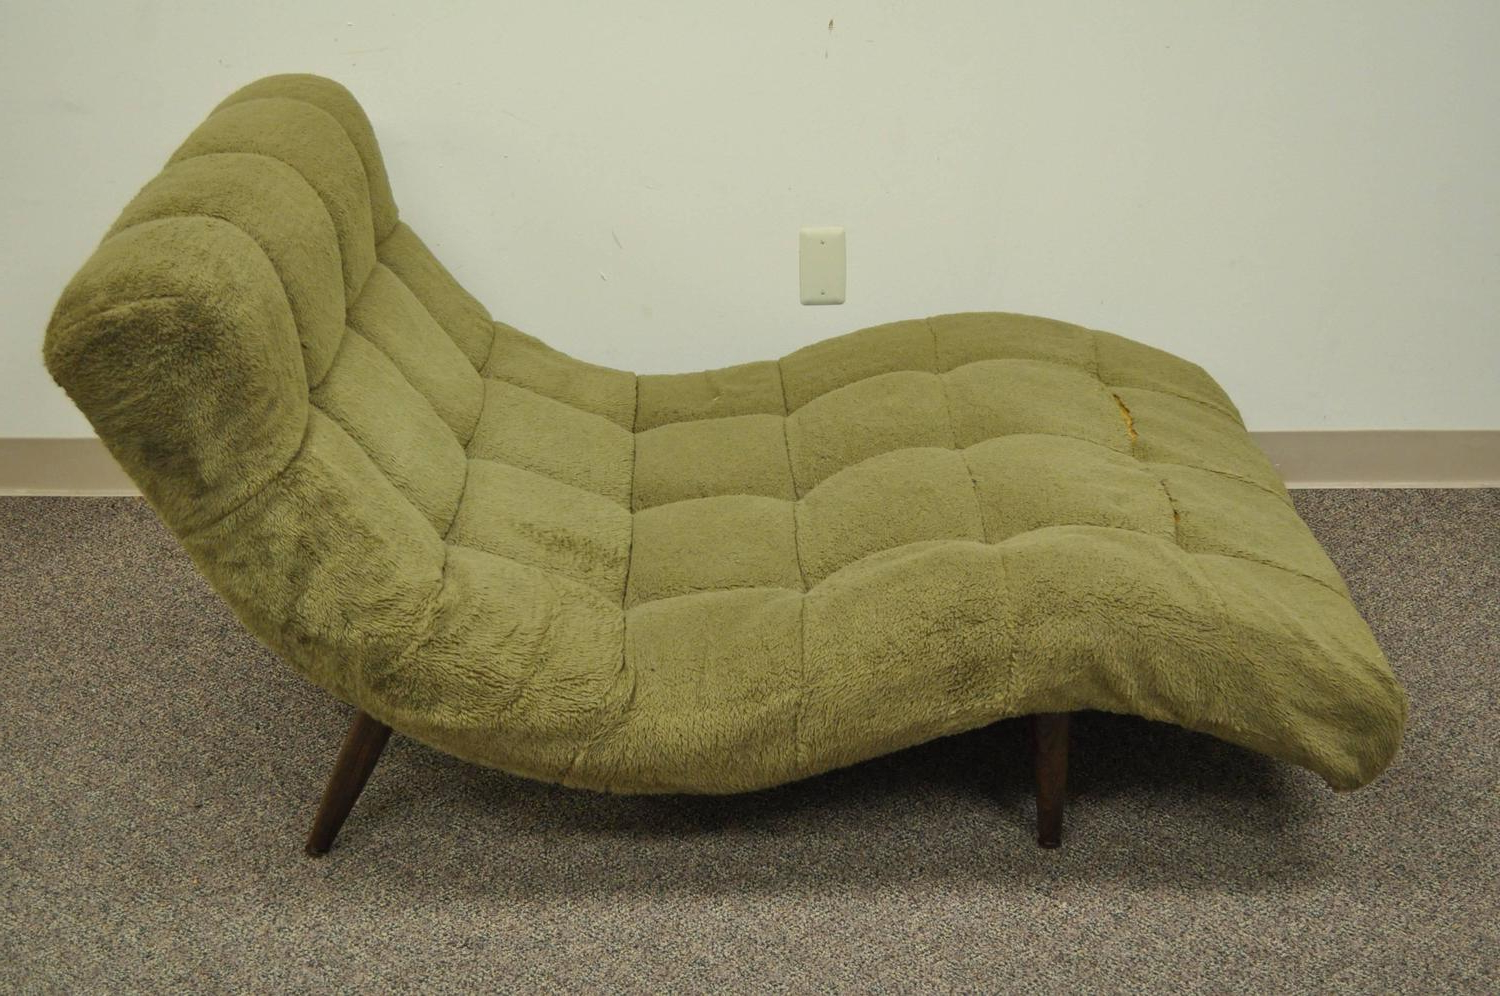 Midcentury Modern Double Wide Wave Chaise Lounge In The Regarding Trendy Extra Wide Recliner Lounge Chairs (View 18 of 25)